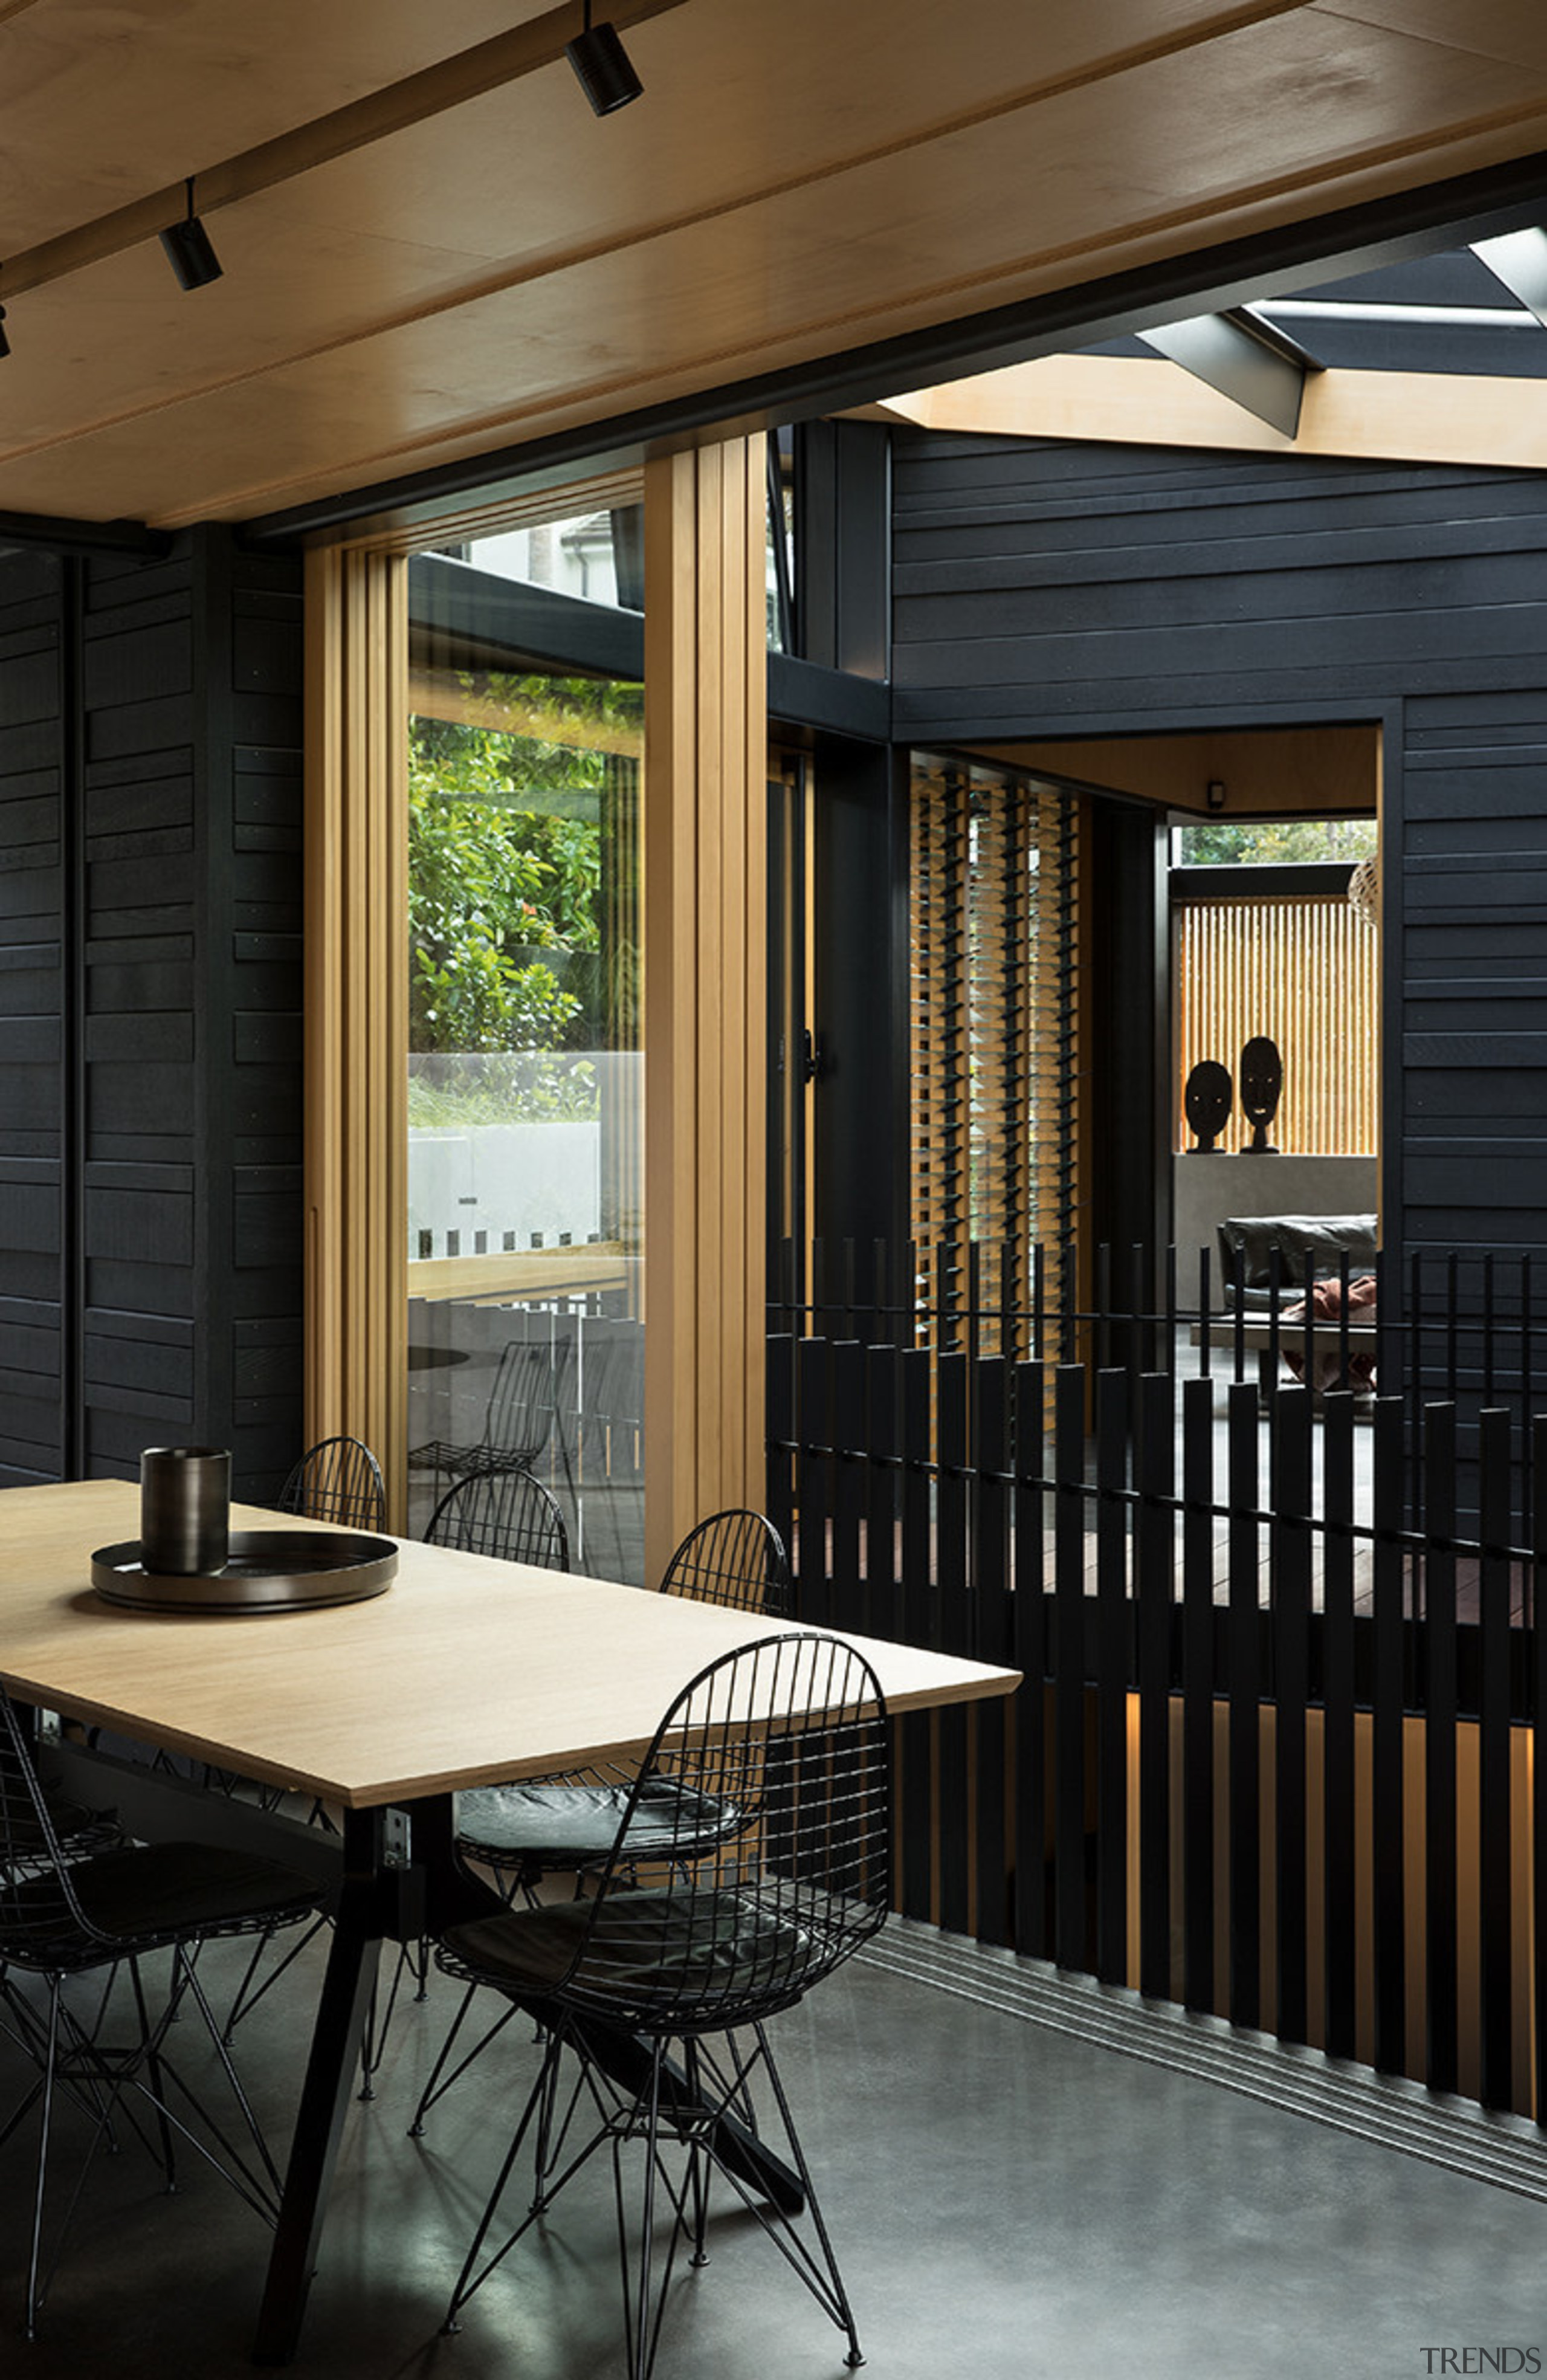 This central kitchen and accompanying dining area follows architecture, home, house, interior design, patio, porch, window, wood, black, Strachan Architects,